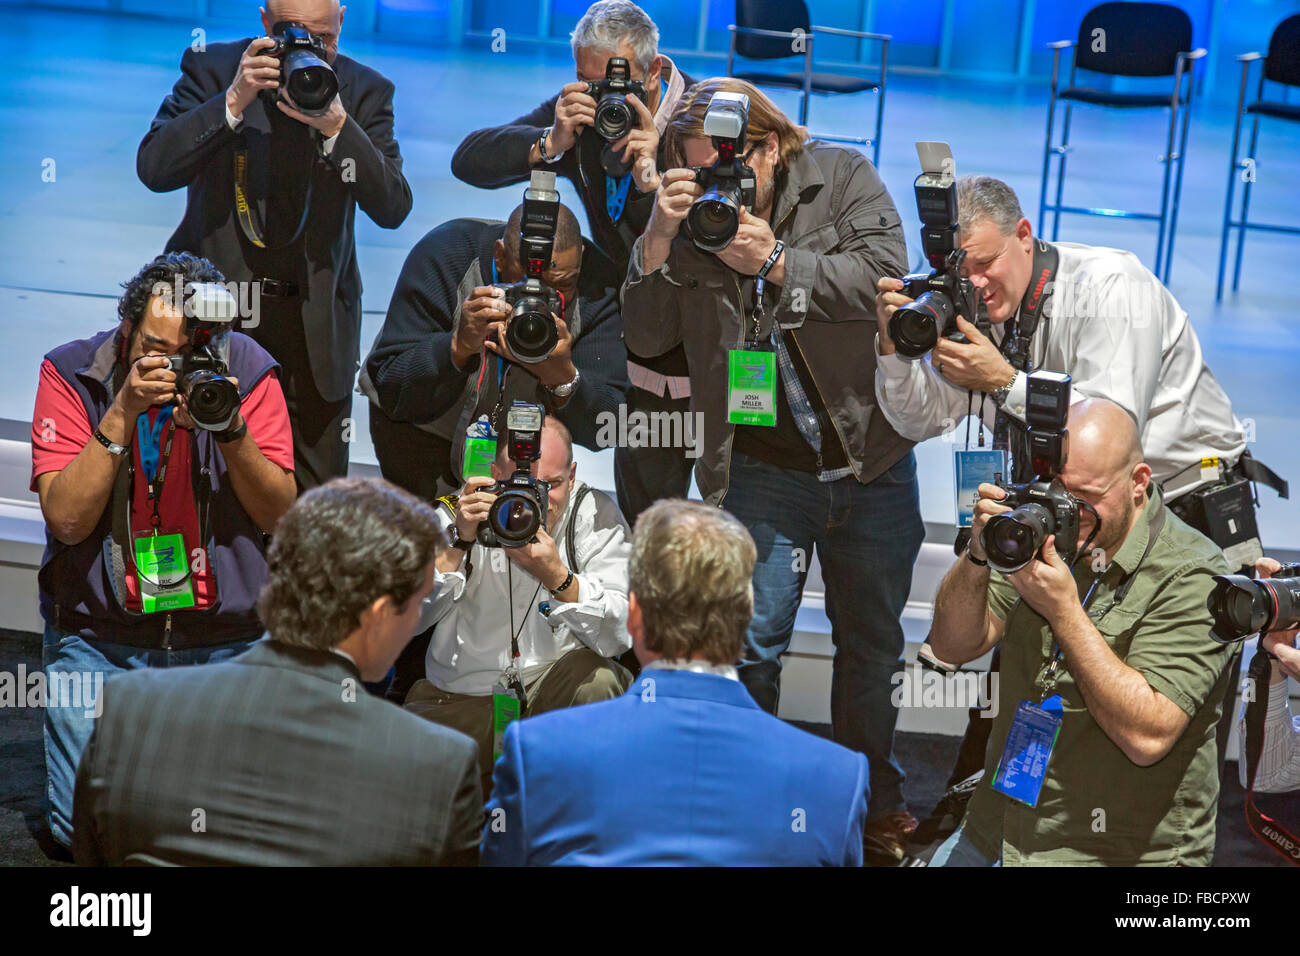 Detroit, Michigan - Photographers photograph Ford Motor Company executives at the North American International Auto - Stock Image